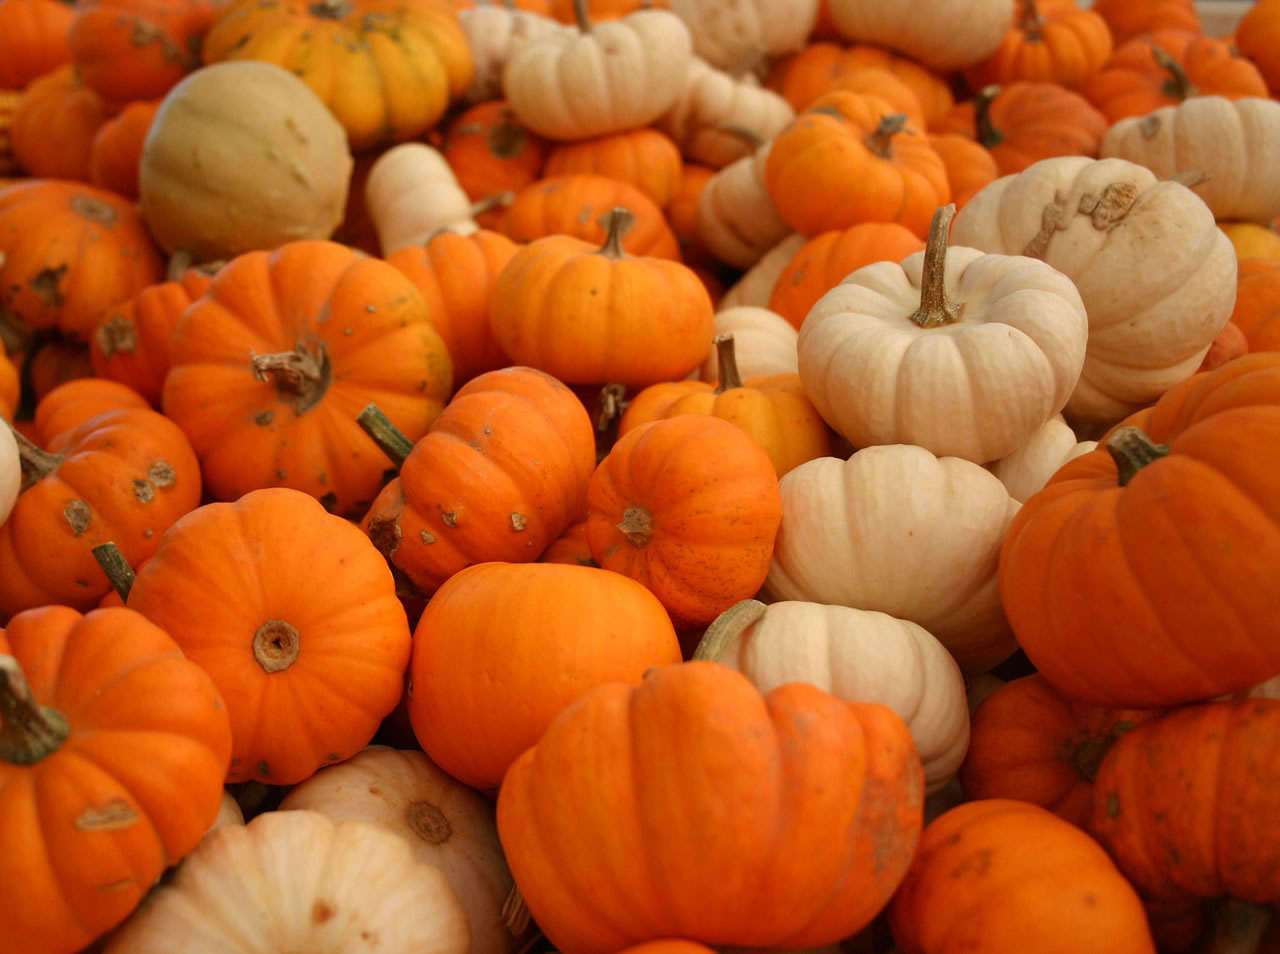 12th annual cedar city pumpkin festival offers fall themed activities for youngsters st george - Fall wallpaper pumpkins ...